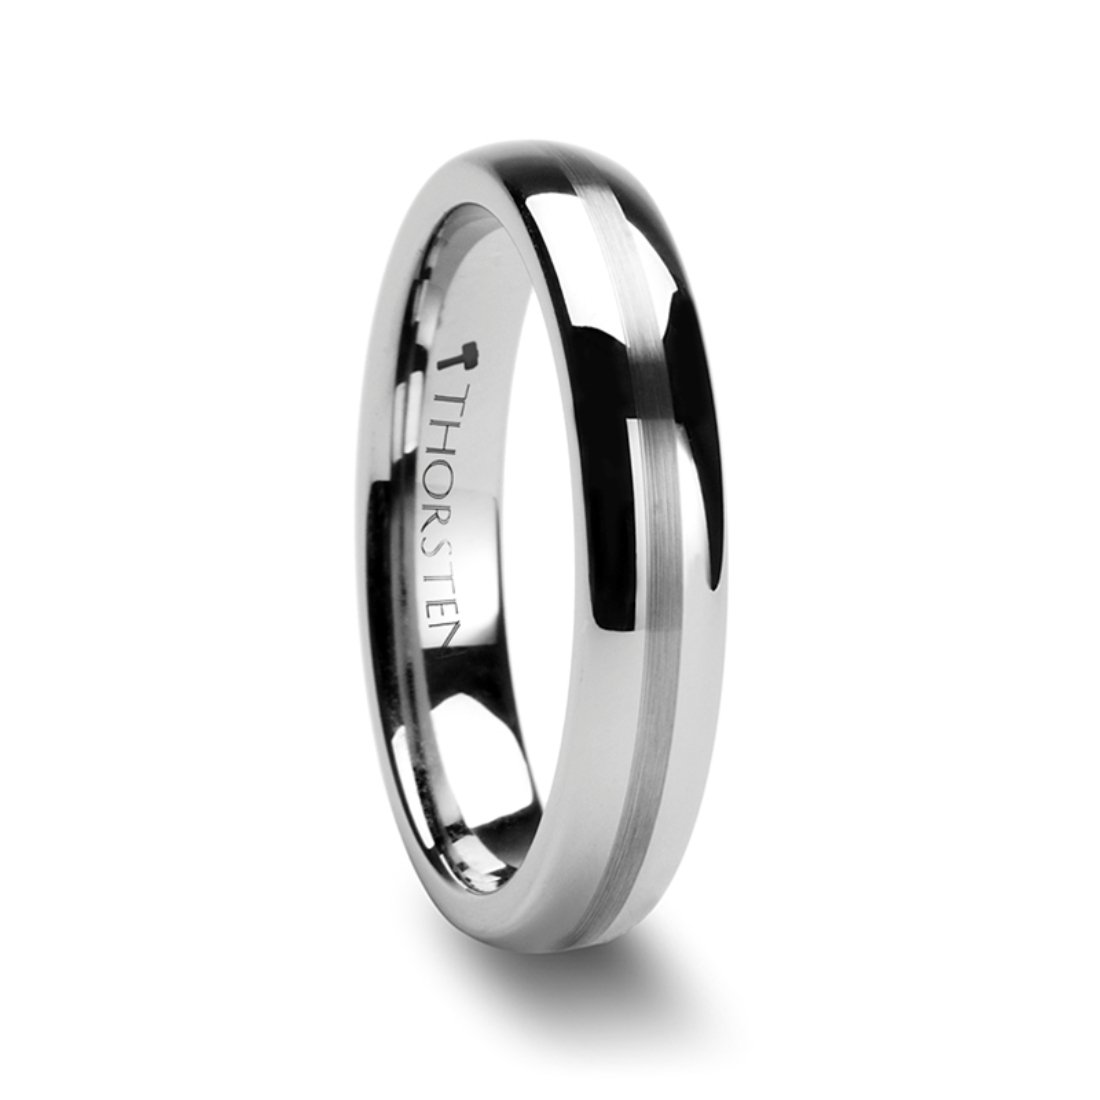 Thorsten BELLATOR Domed with Brushed Center Stripe Polished Tungsten Ring 4mm Wide Wedding Band from Roy Rose Jewelry Size 9 by Thorsten